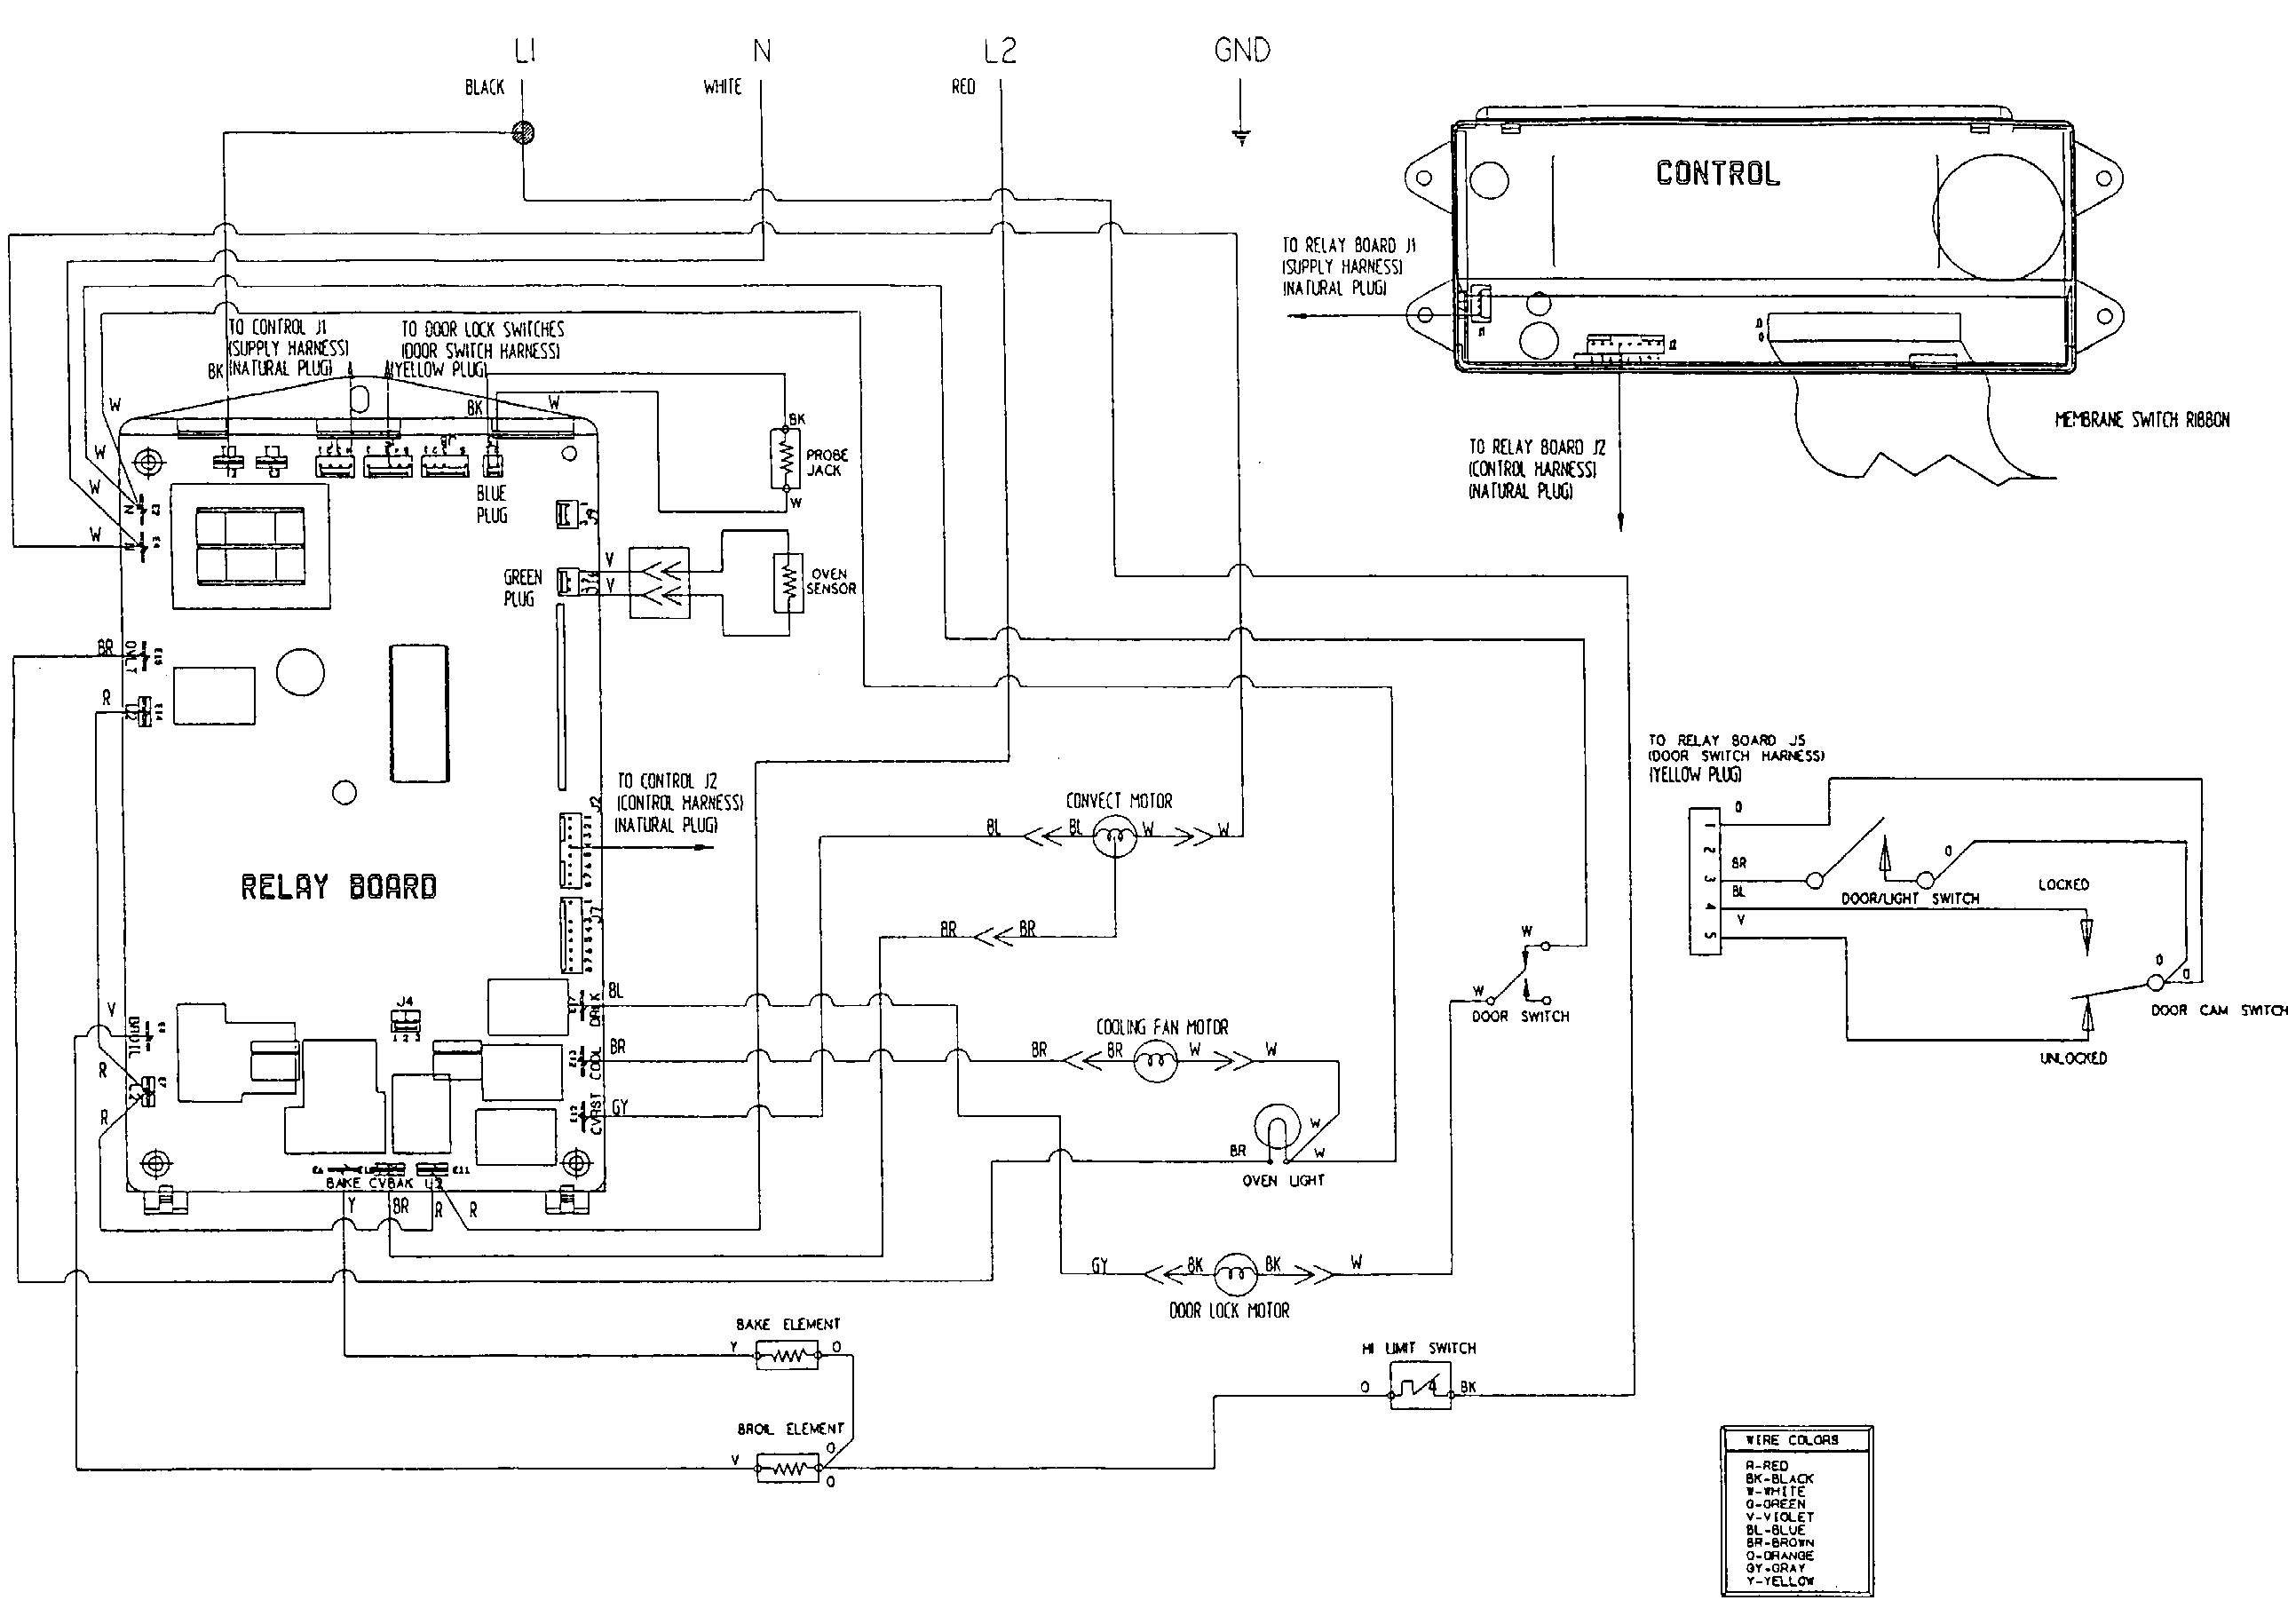 For Lg Microwave Oven Wiring Diagram Jenn Air W30400bc Electric Wall Oven Timer Stove Clocks